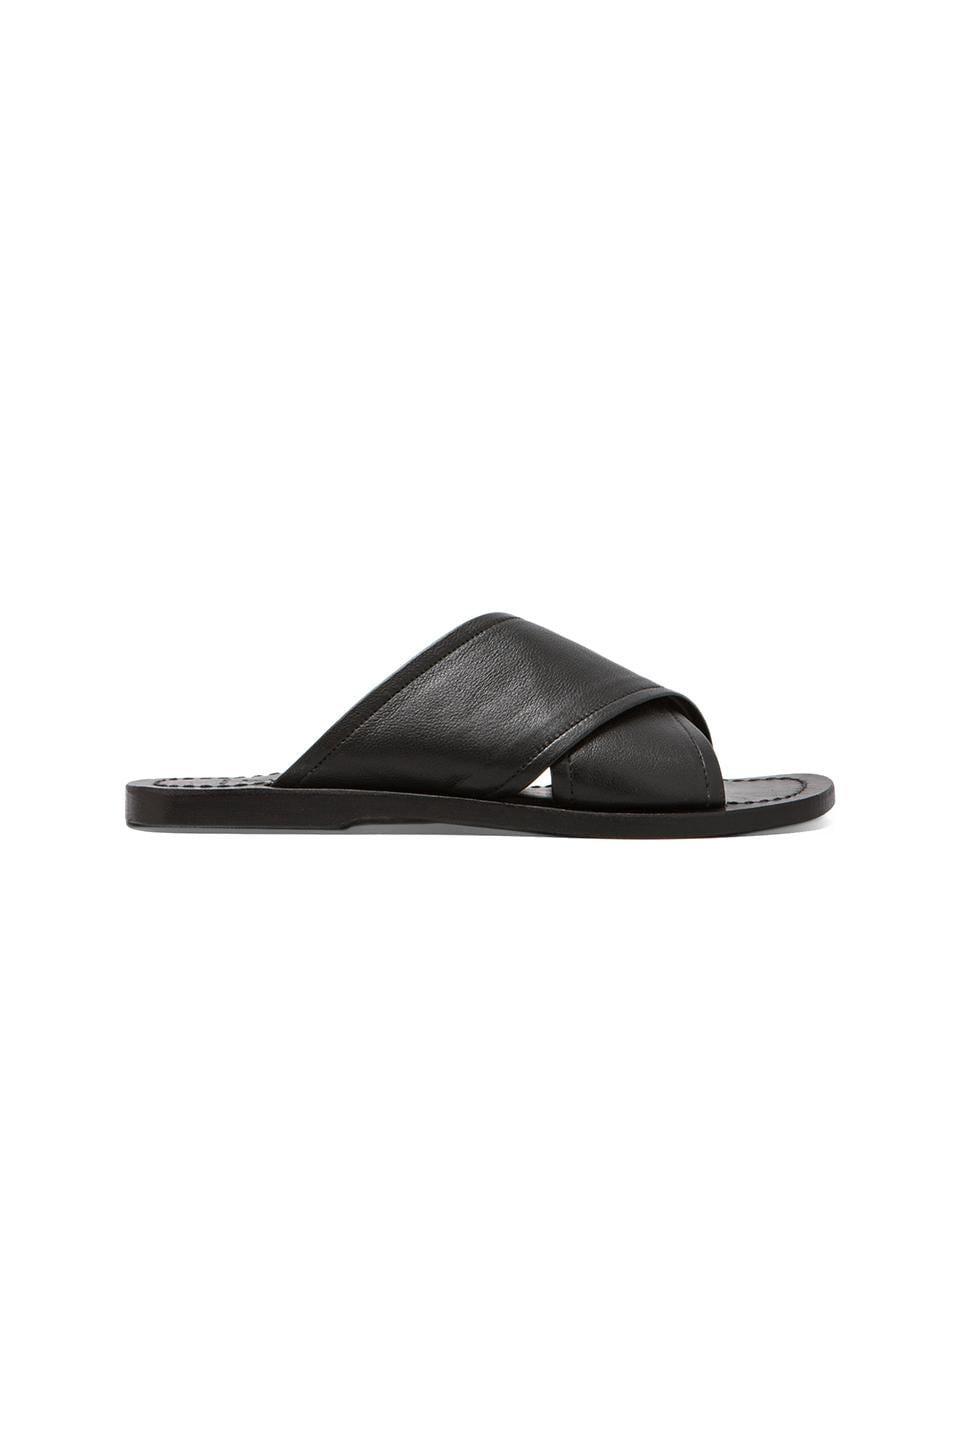 Elliott Label Slide Sandal in Black